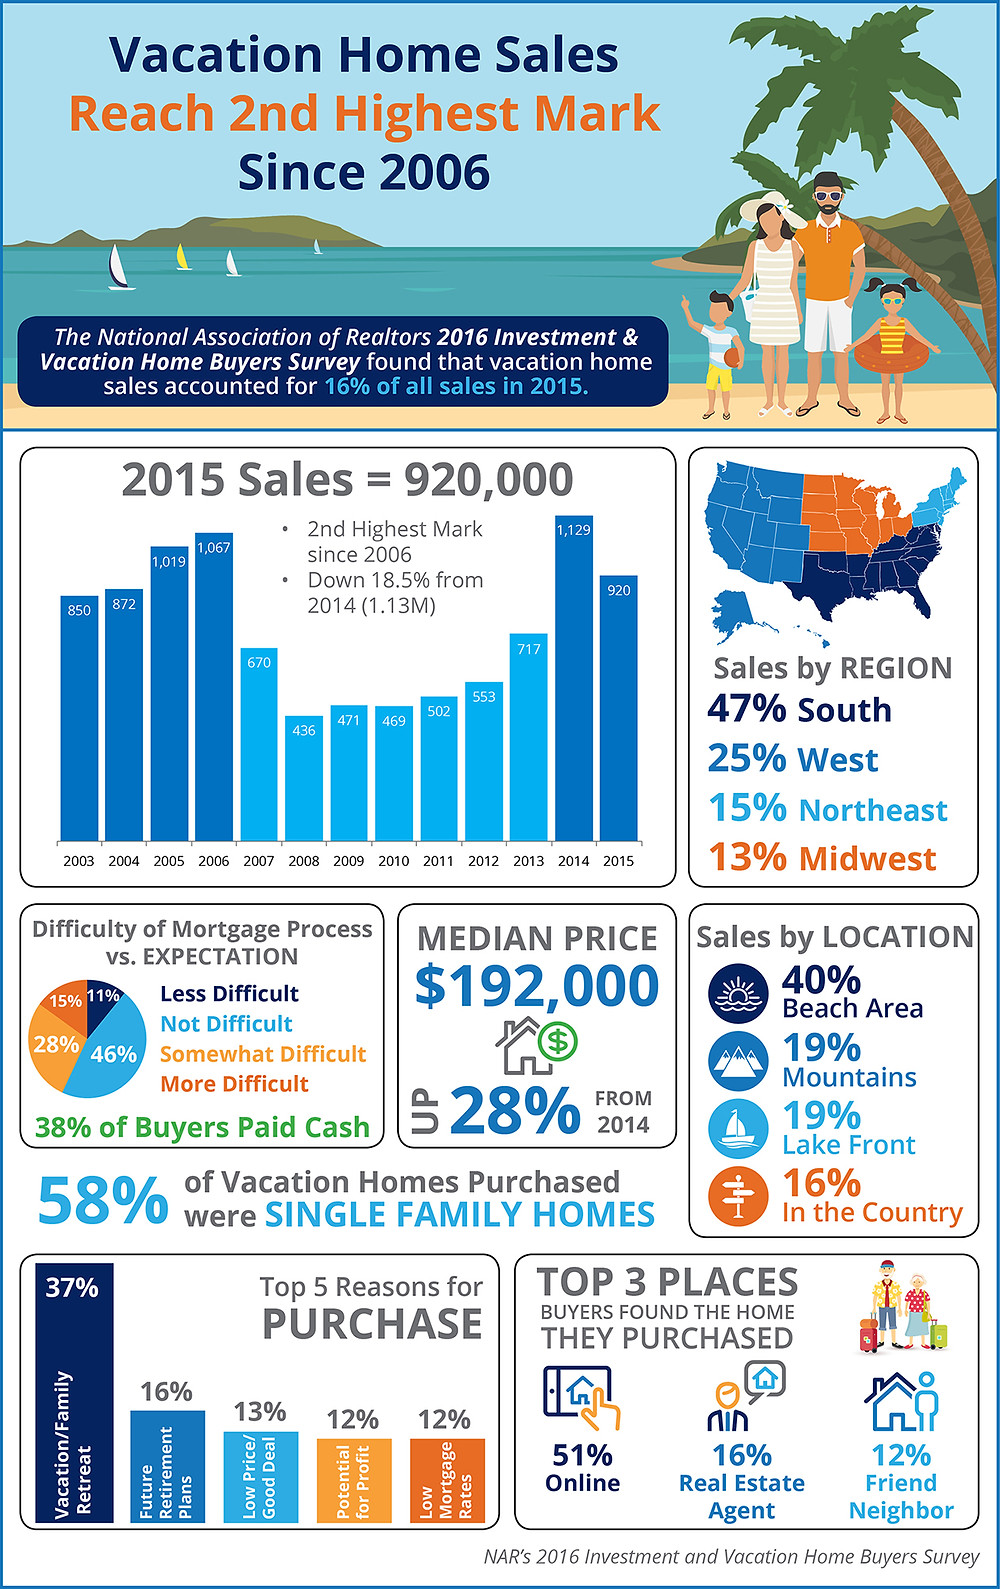 Vacation Home Sales Reach 2nd Highest Mark Since 2006 [INFOGRAPHIC]   Simplifying The Market